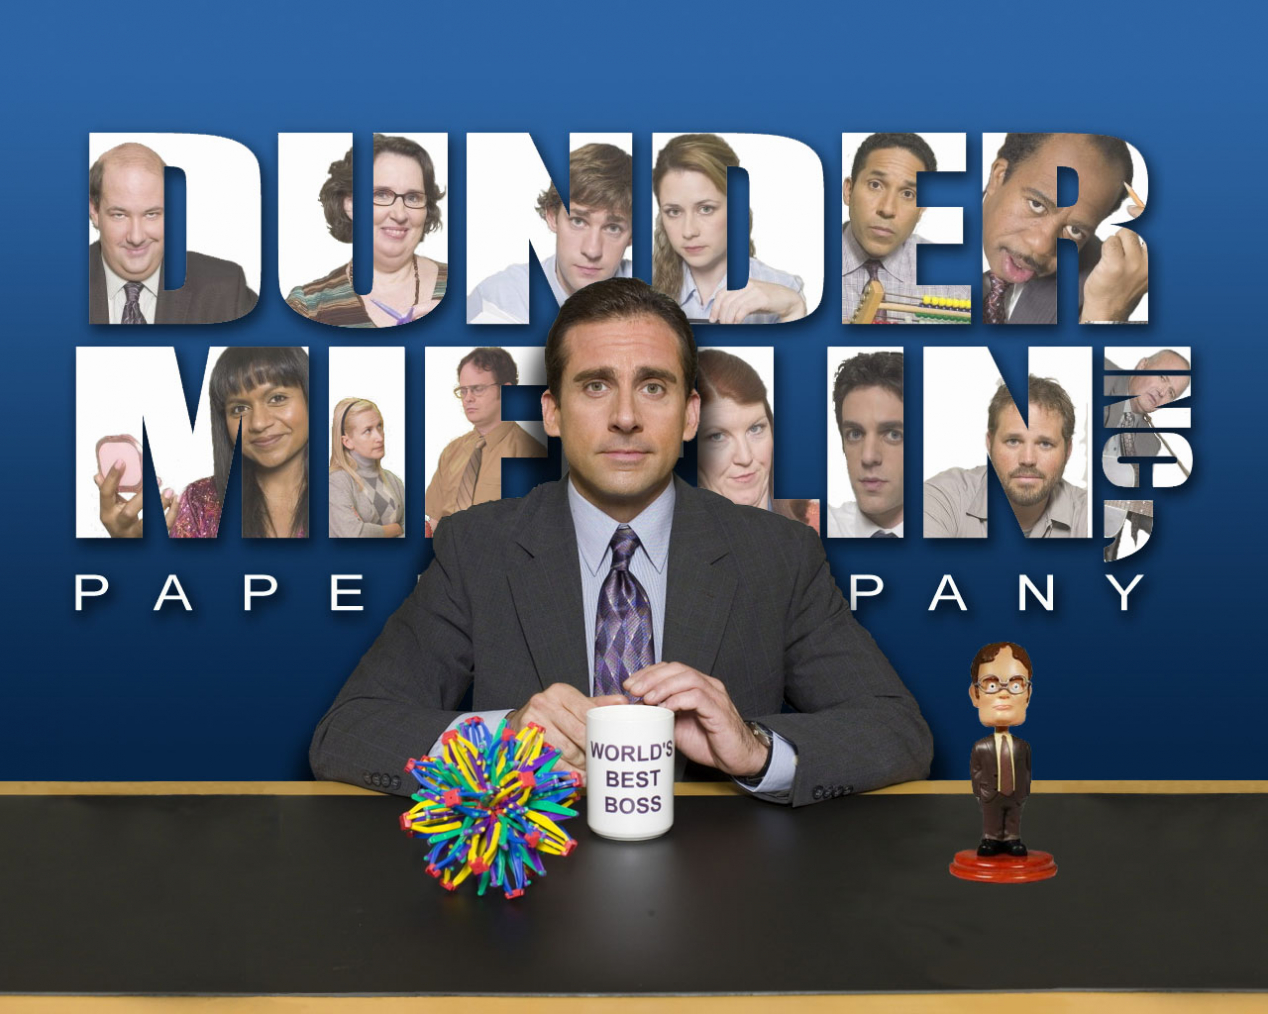 Watch the office season 6 for free online - The office online season 6 ...